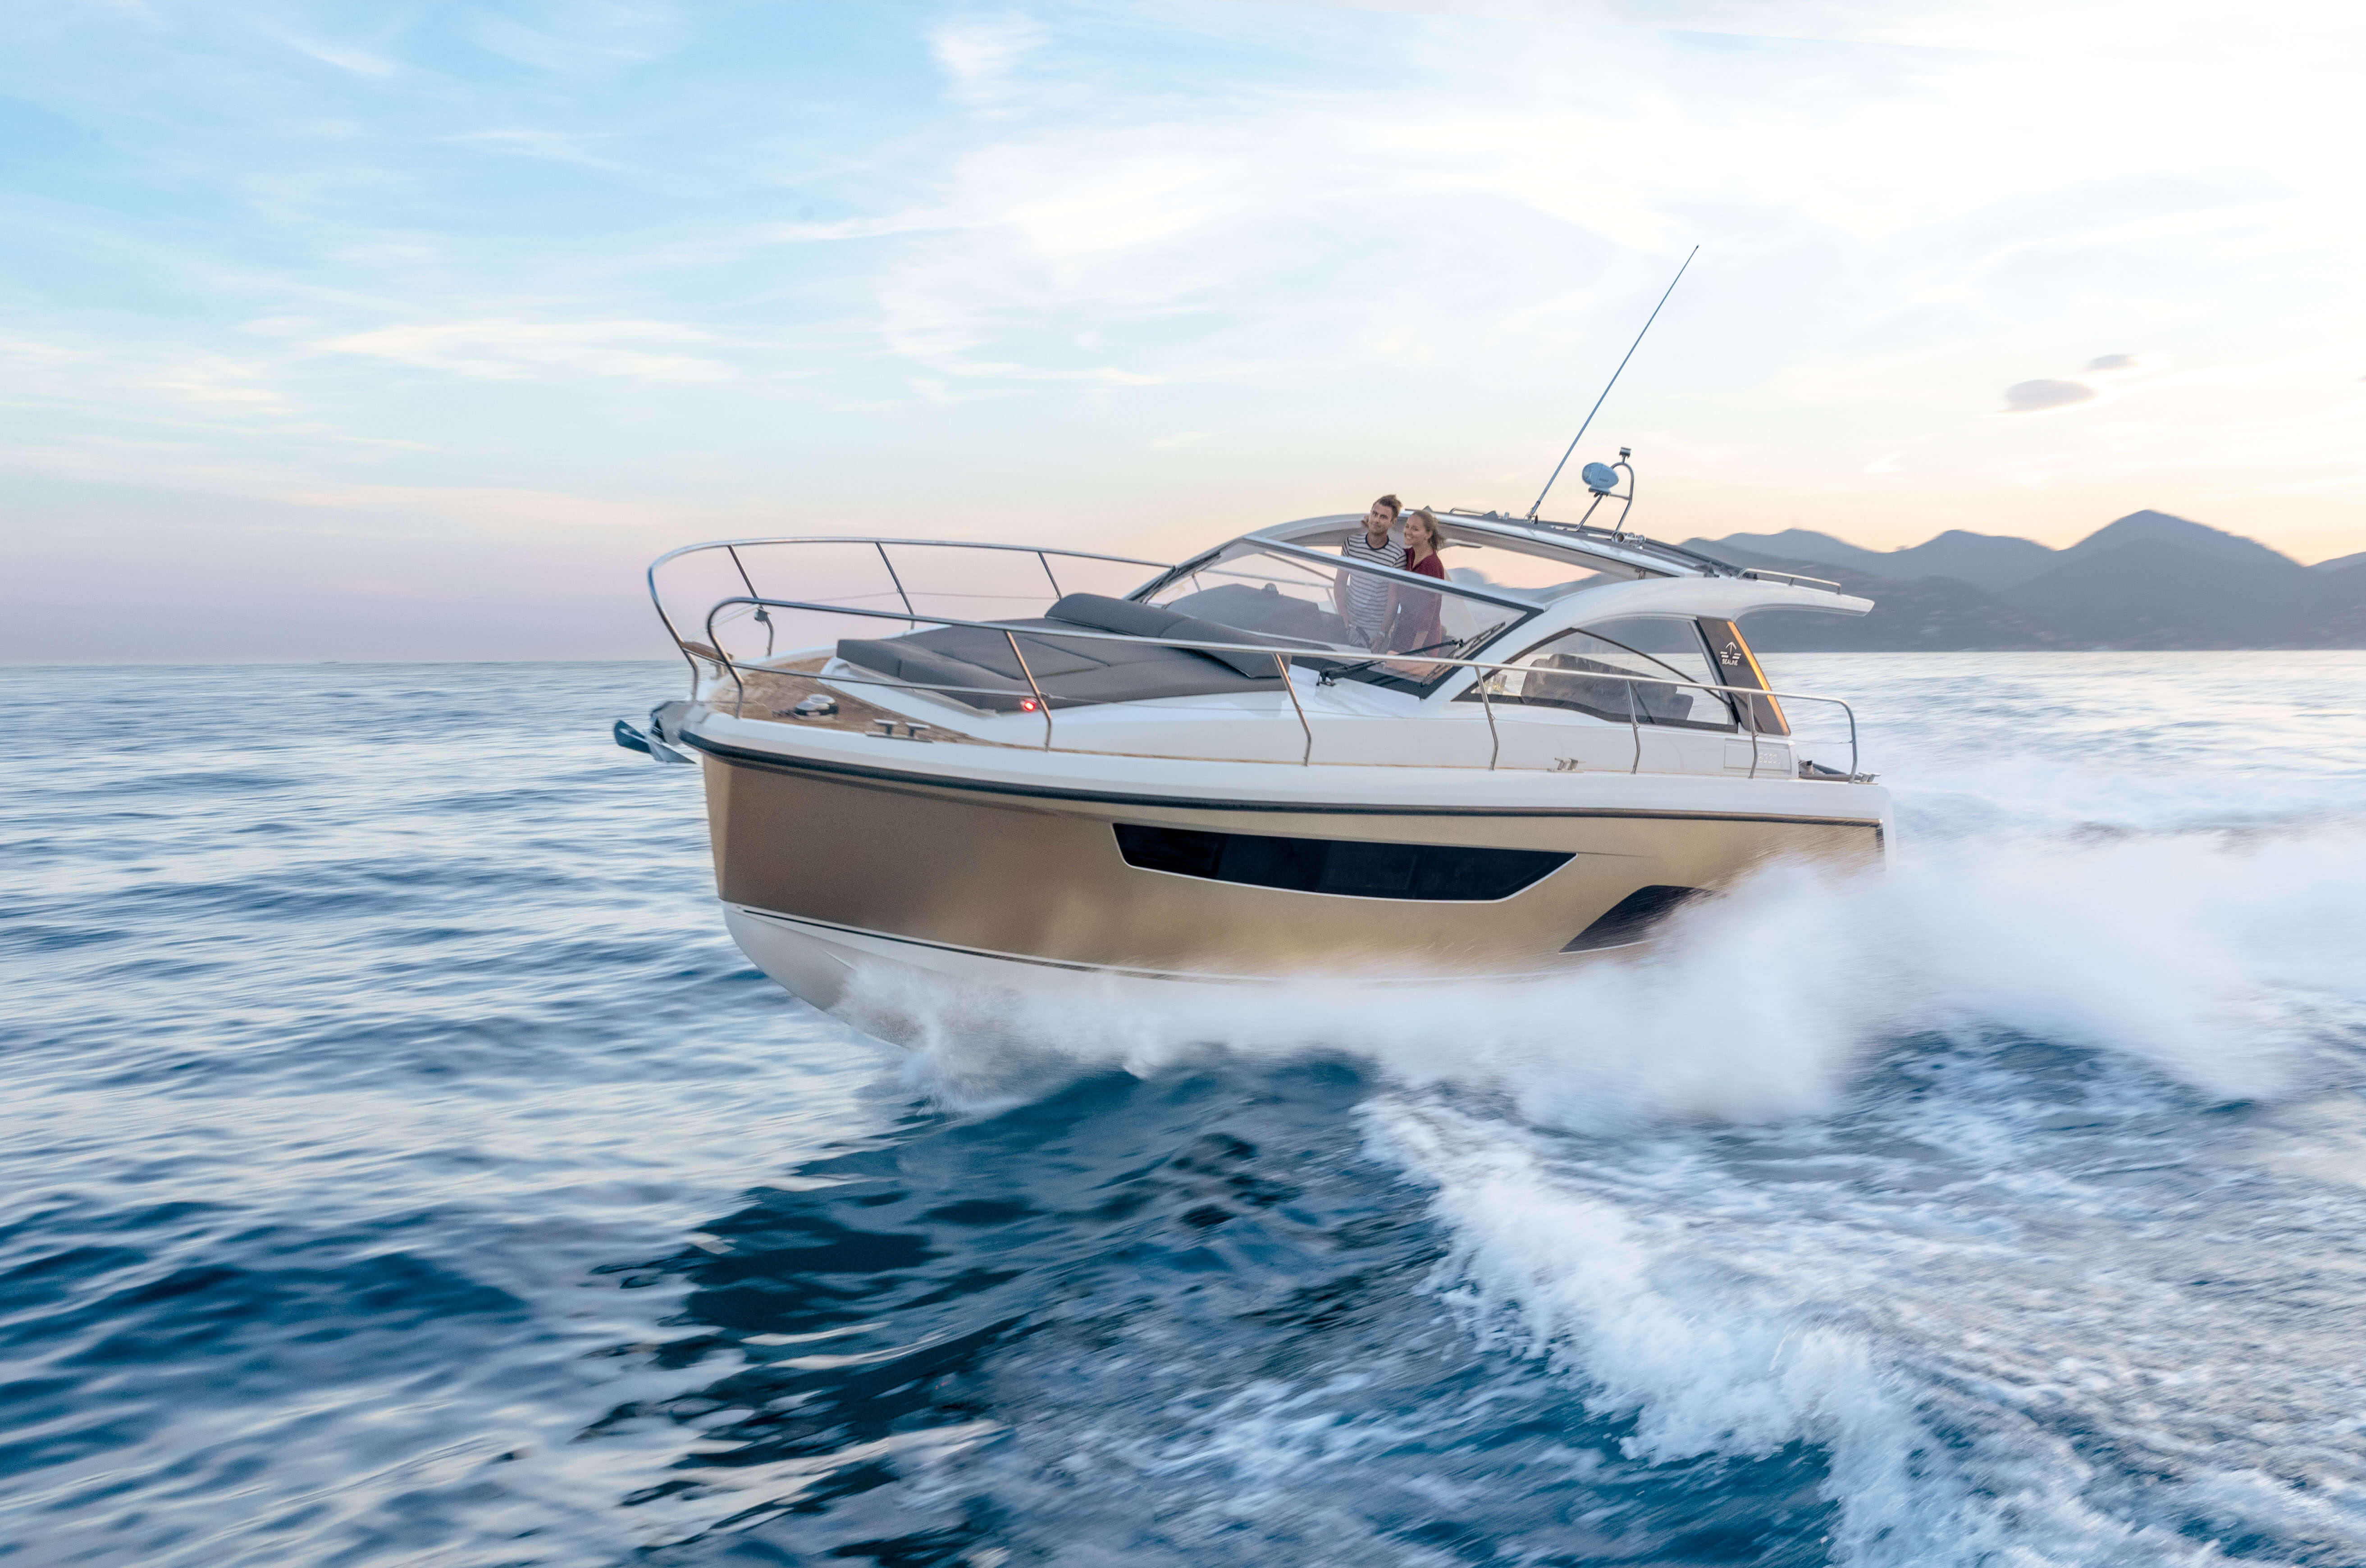 Sealine S330v exterior | The S330v is powered by 600 hp. | Sealine